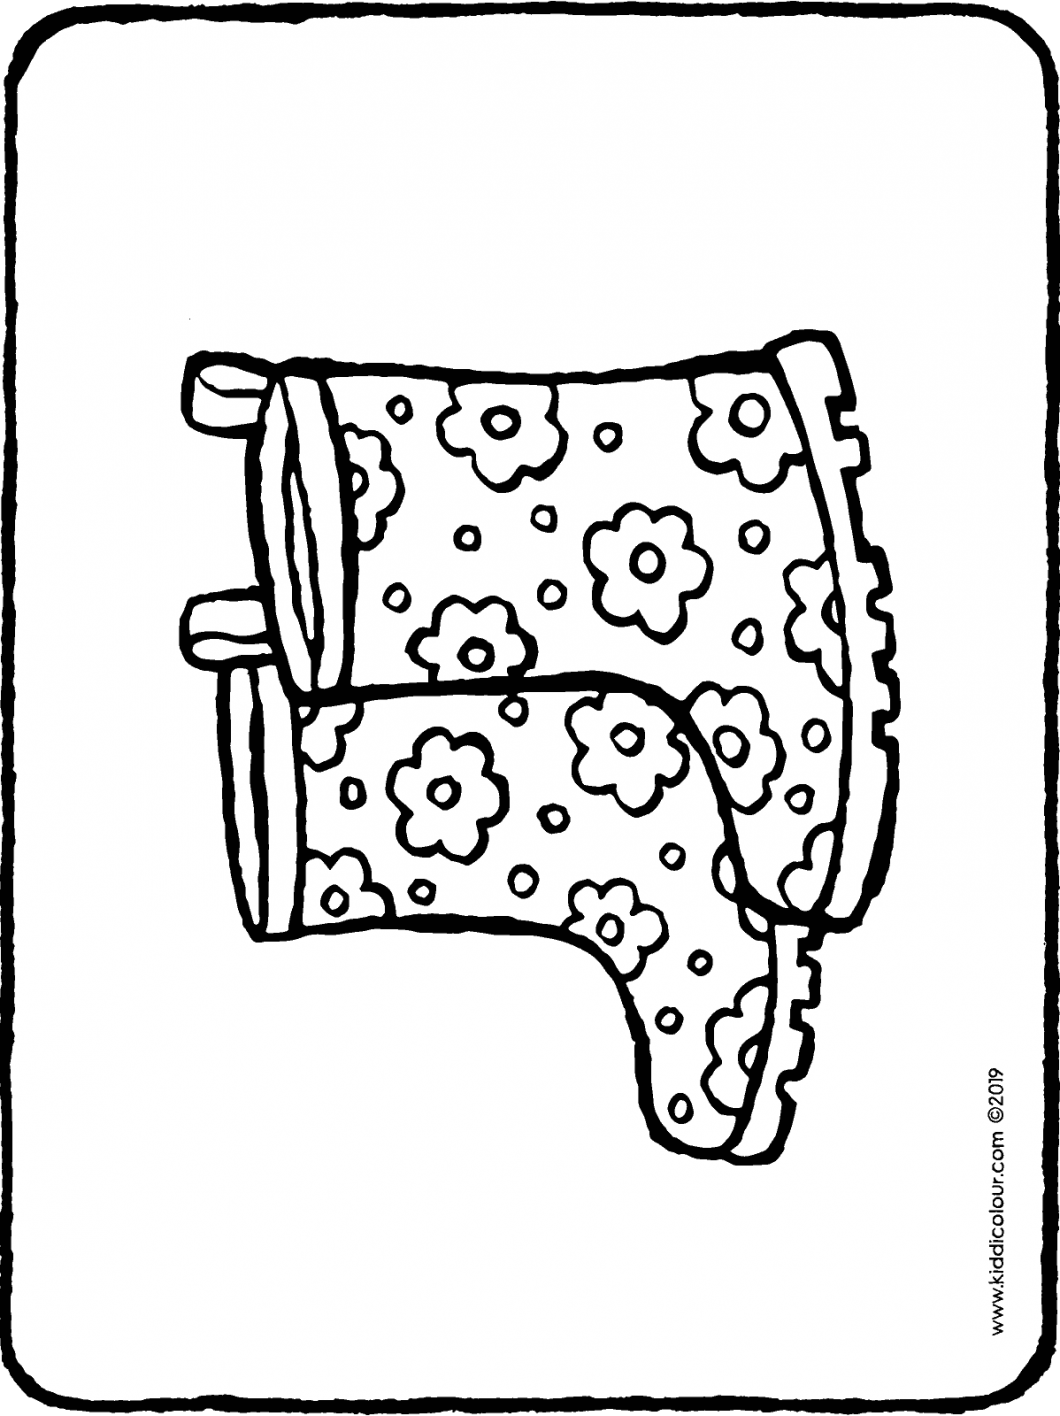 boots with flowers colouring page drawing picture 01H